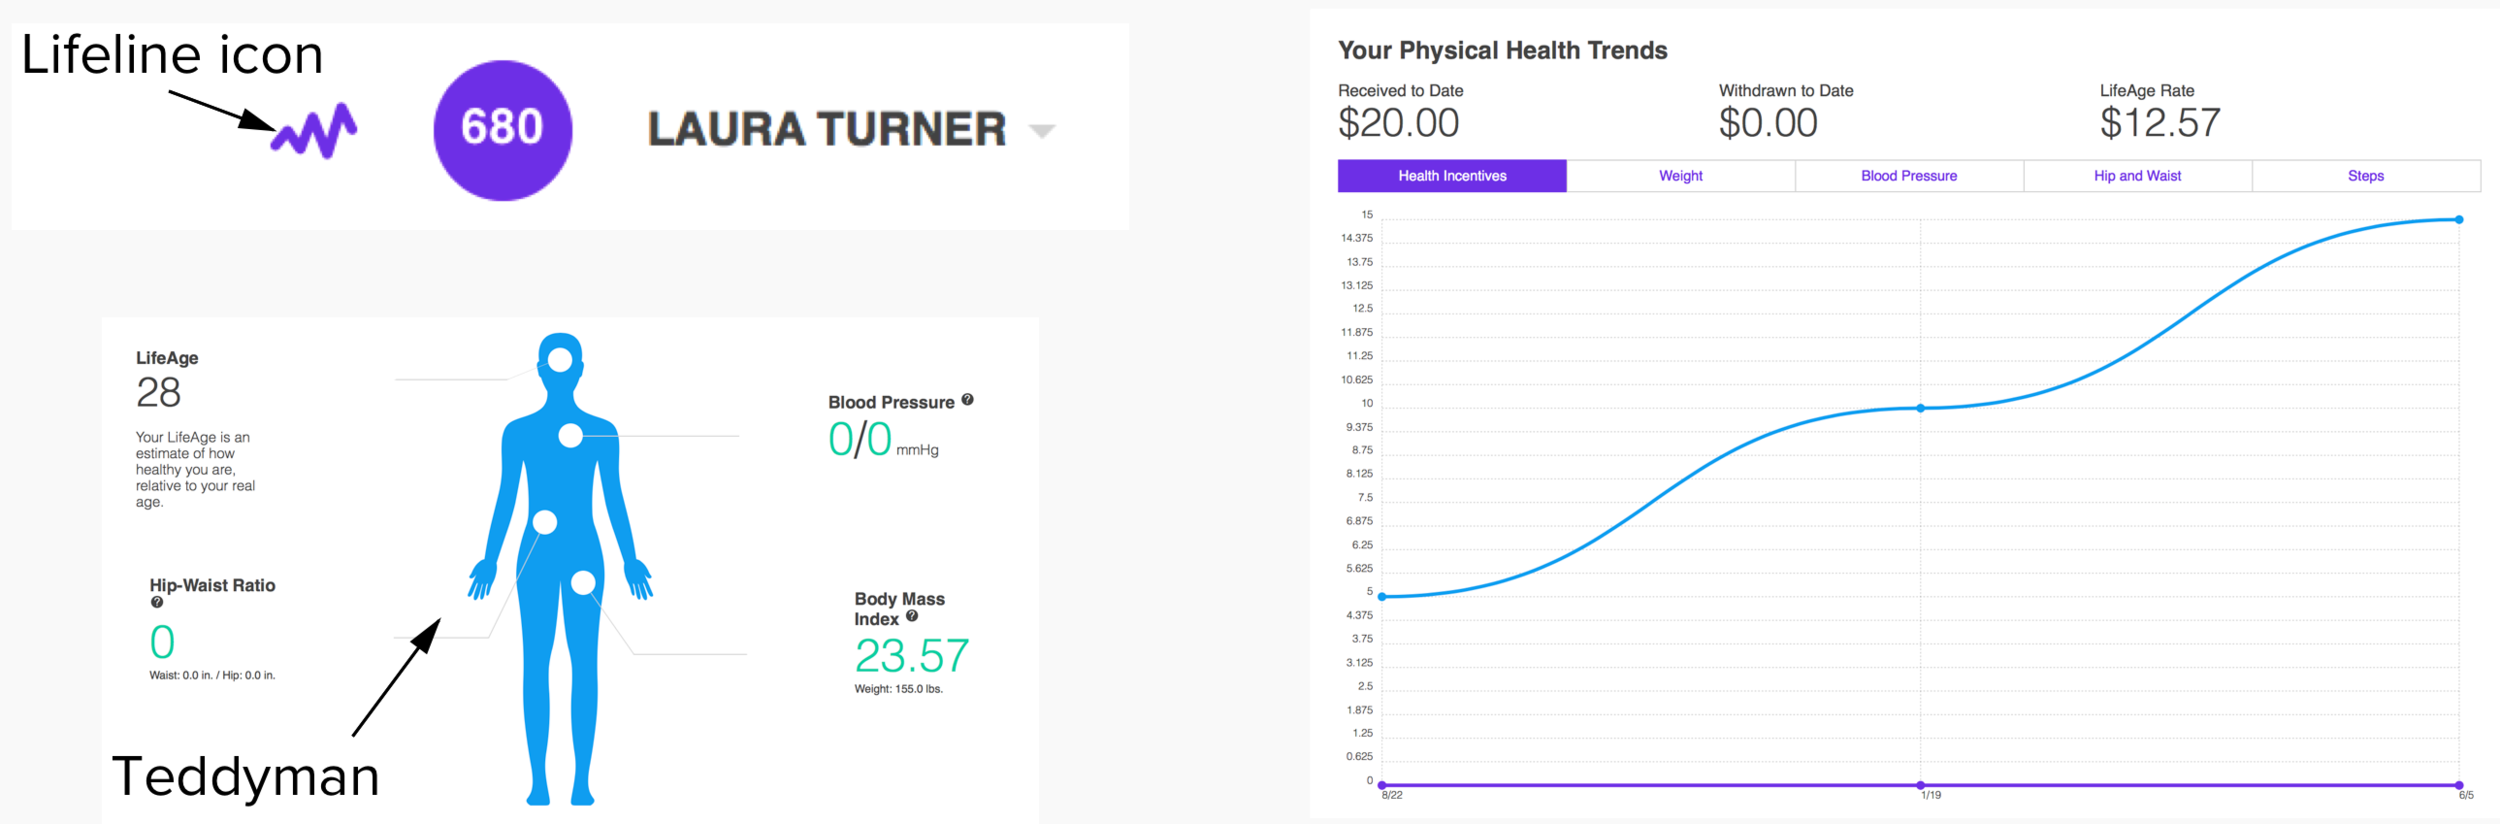 Physical+Health+Trends.png